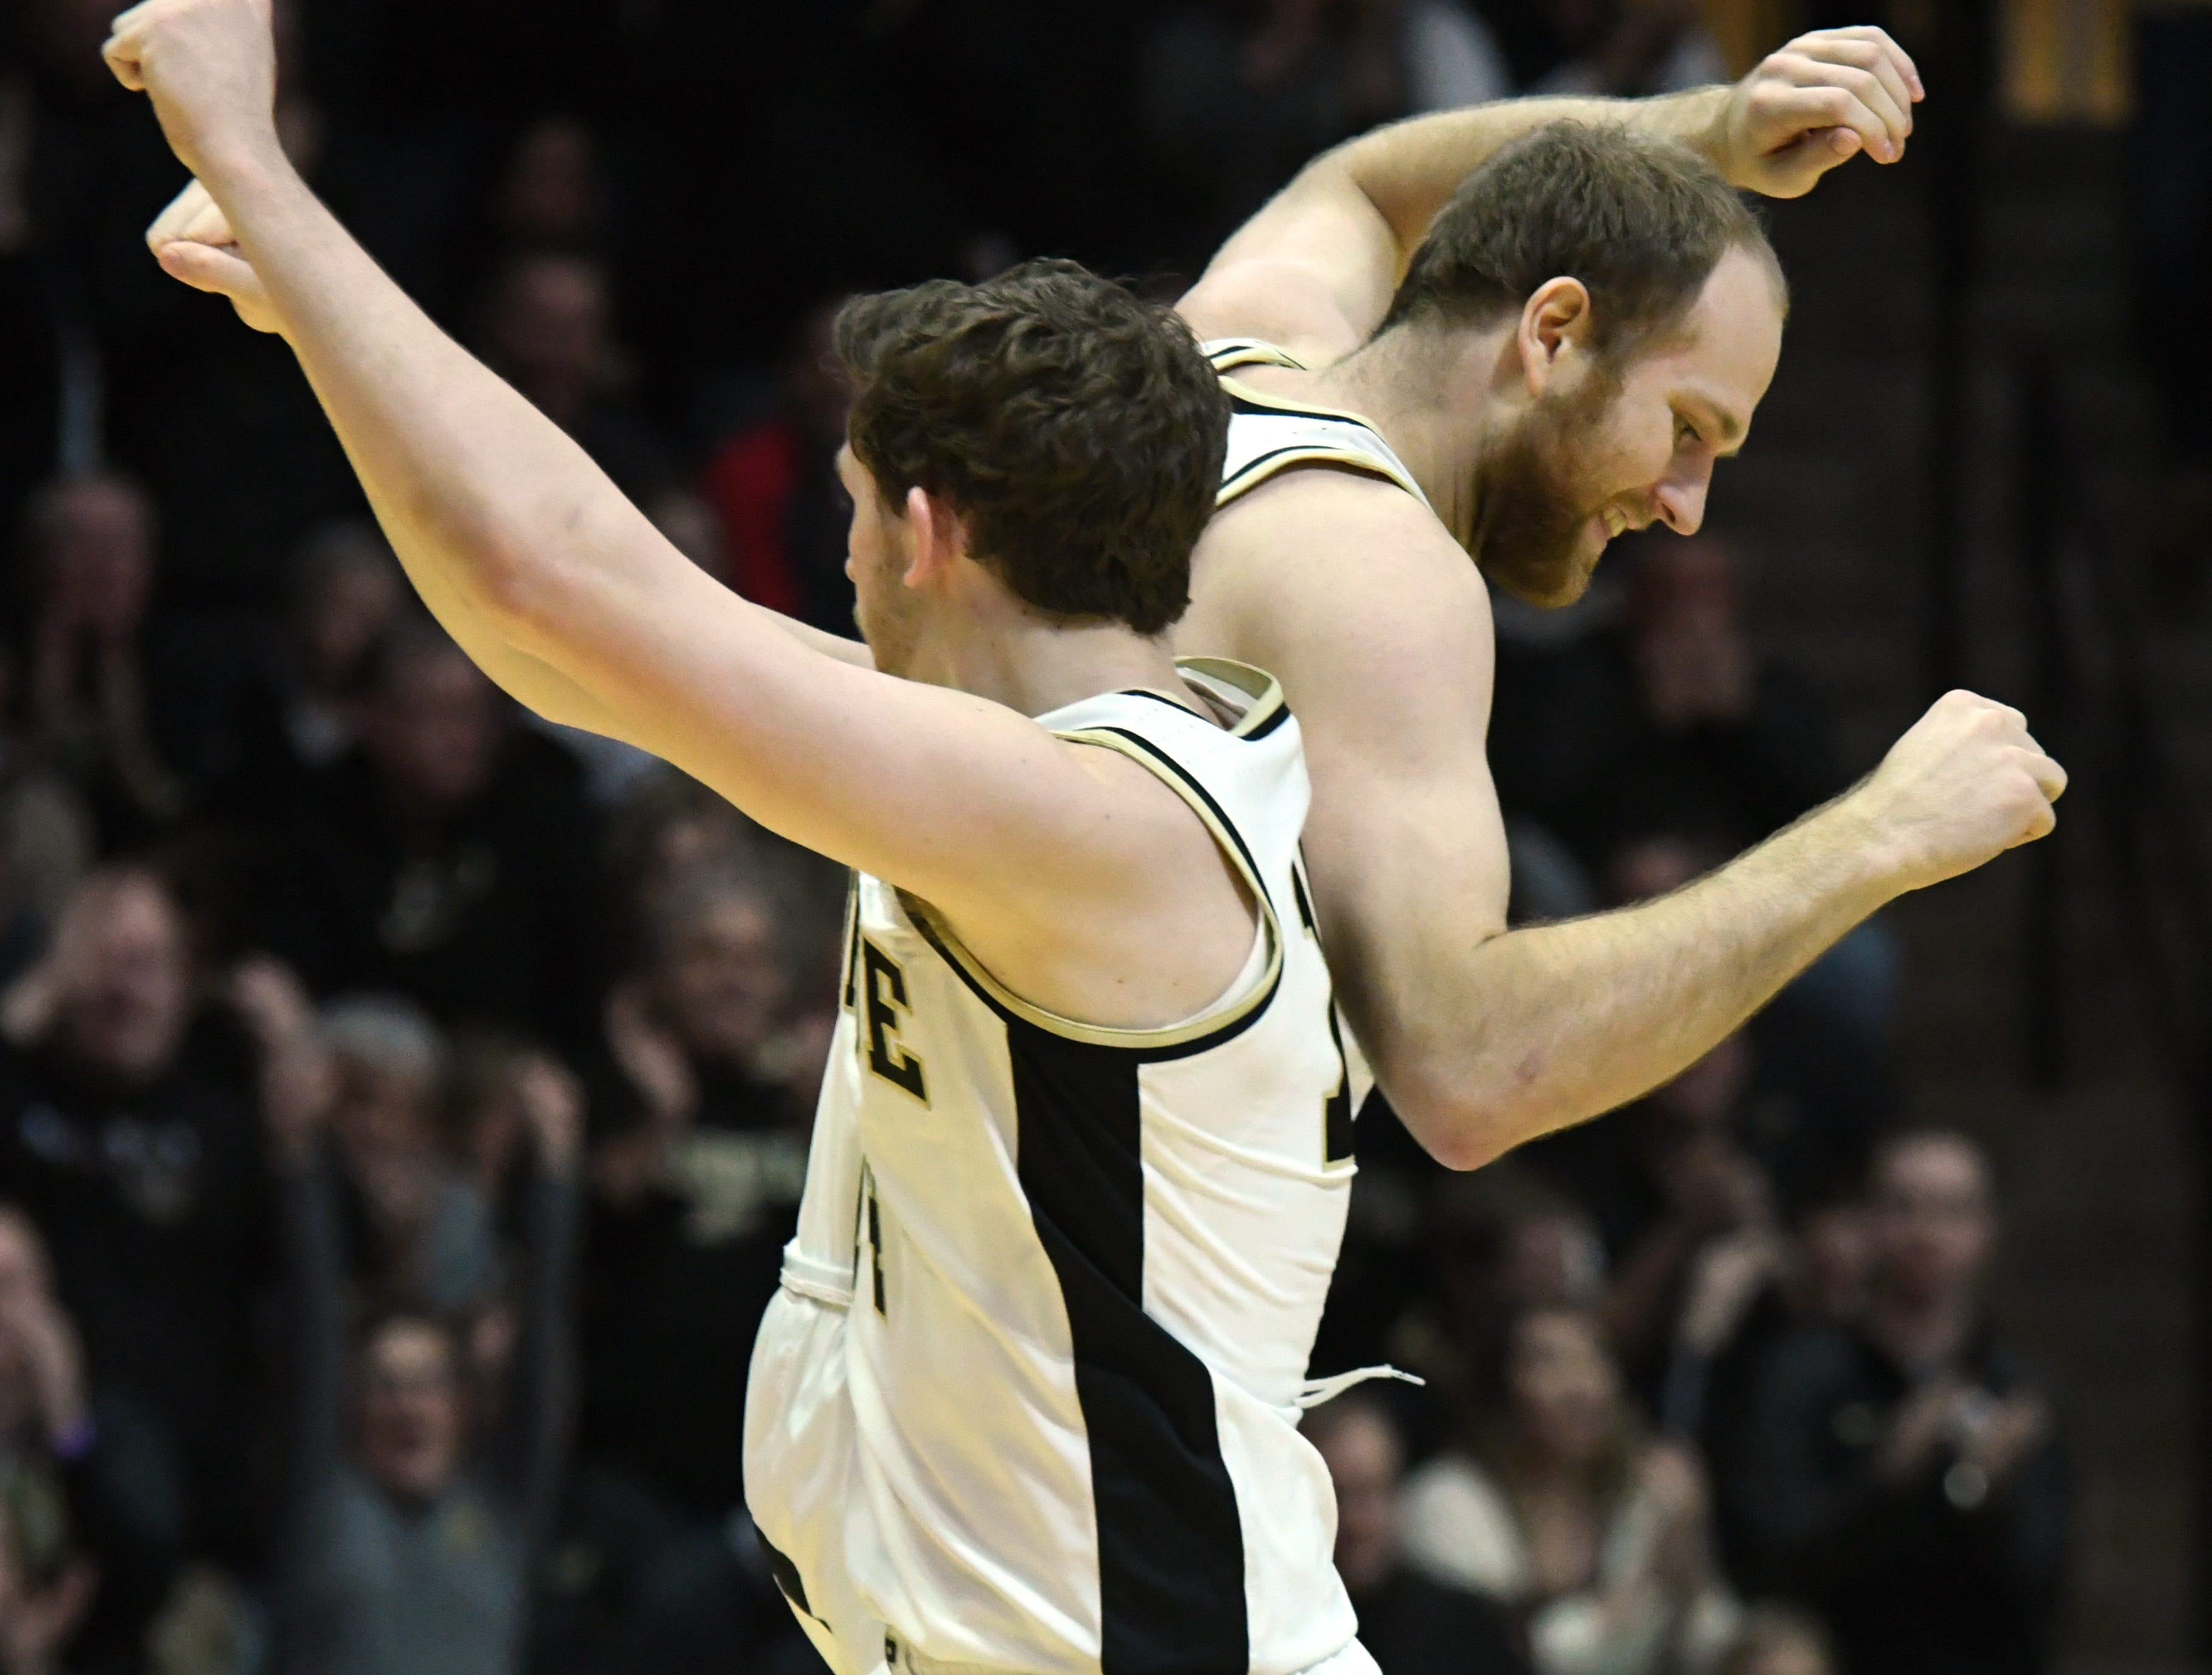 By Frank Oliver for the Journal and Courier --Purdue's Ryan Cline, left, and Evan Boudreaux celebrate after a three-point shot by Boudreaux in the first half against Ohio State on March 2, 2019 in West Lafayette.